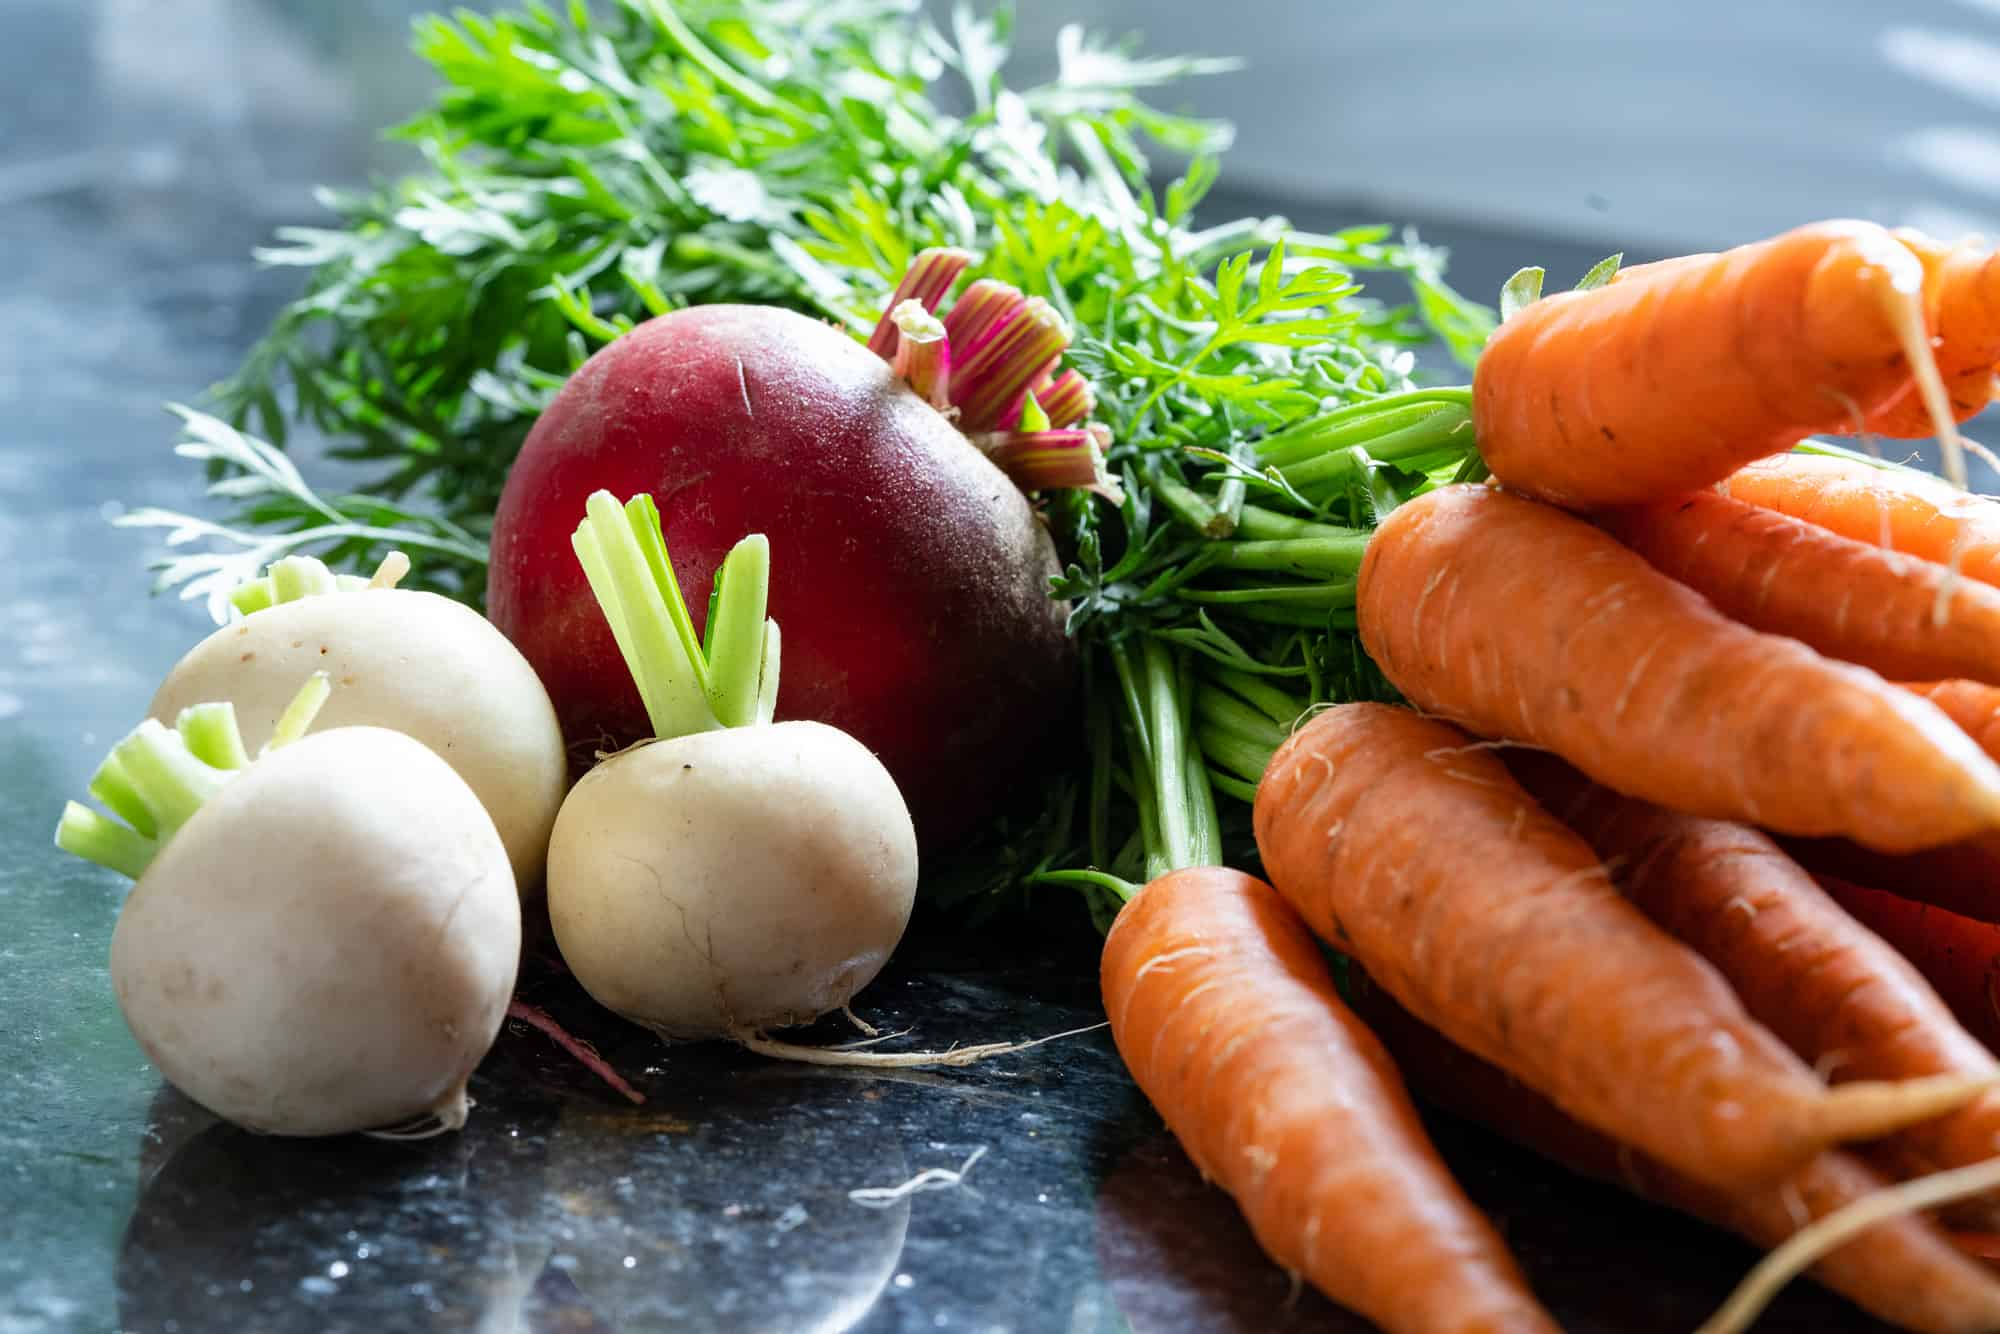 turnips, beets and carrots